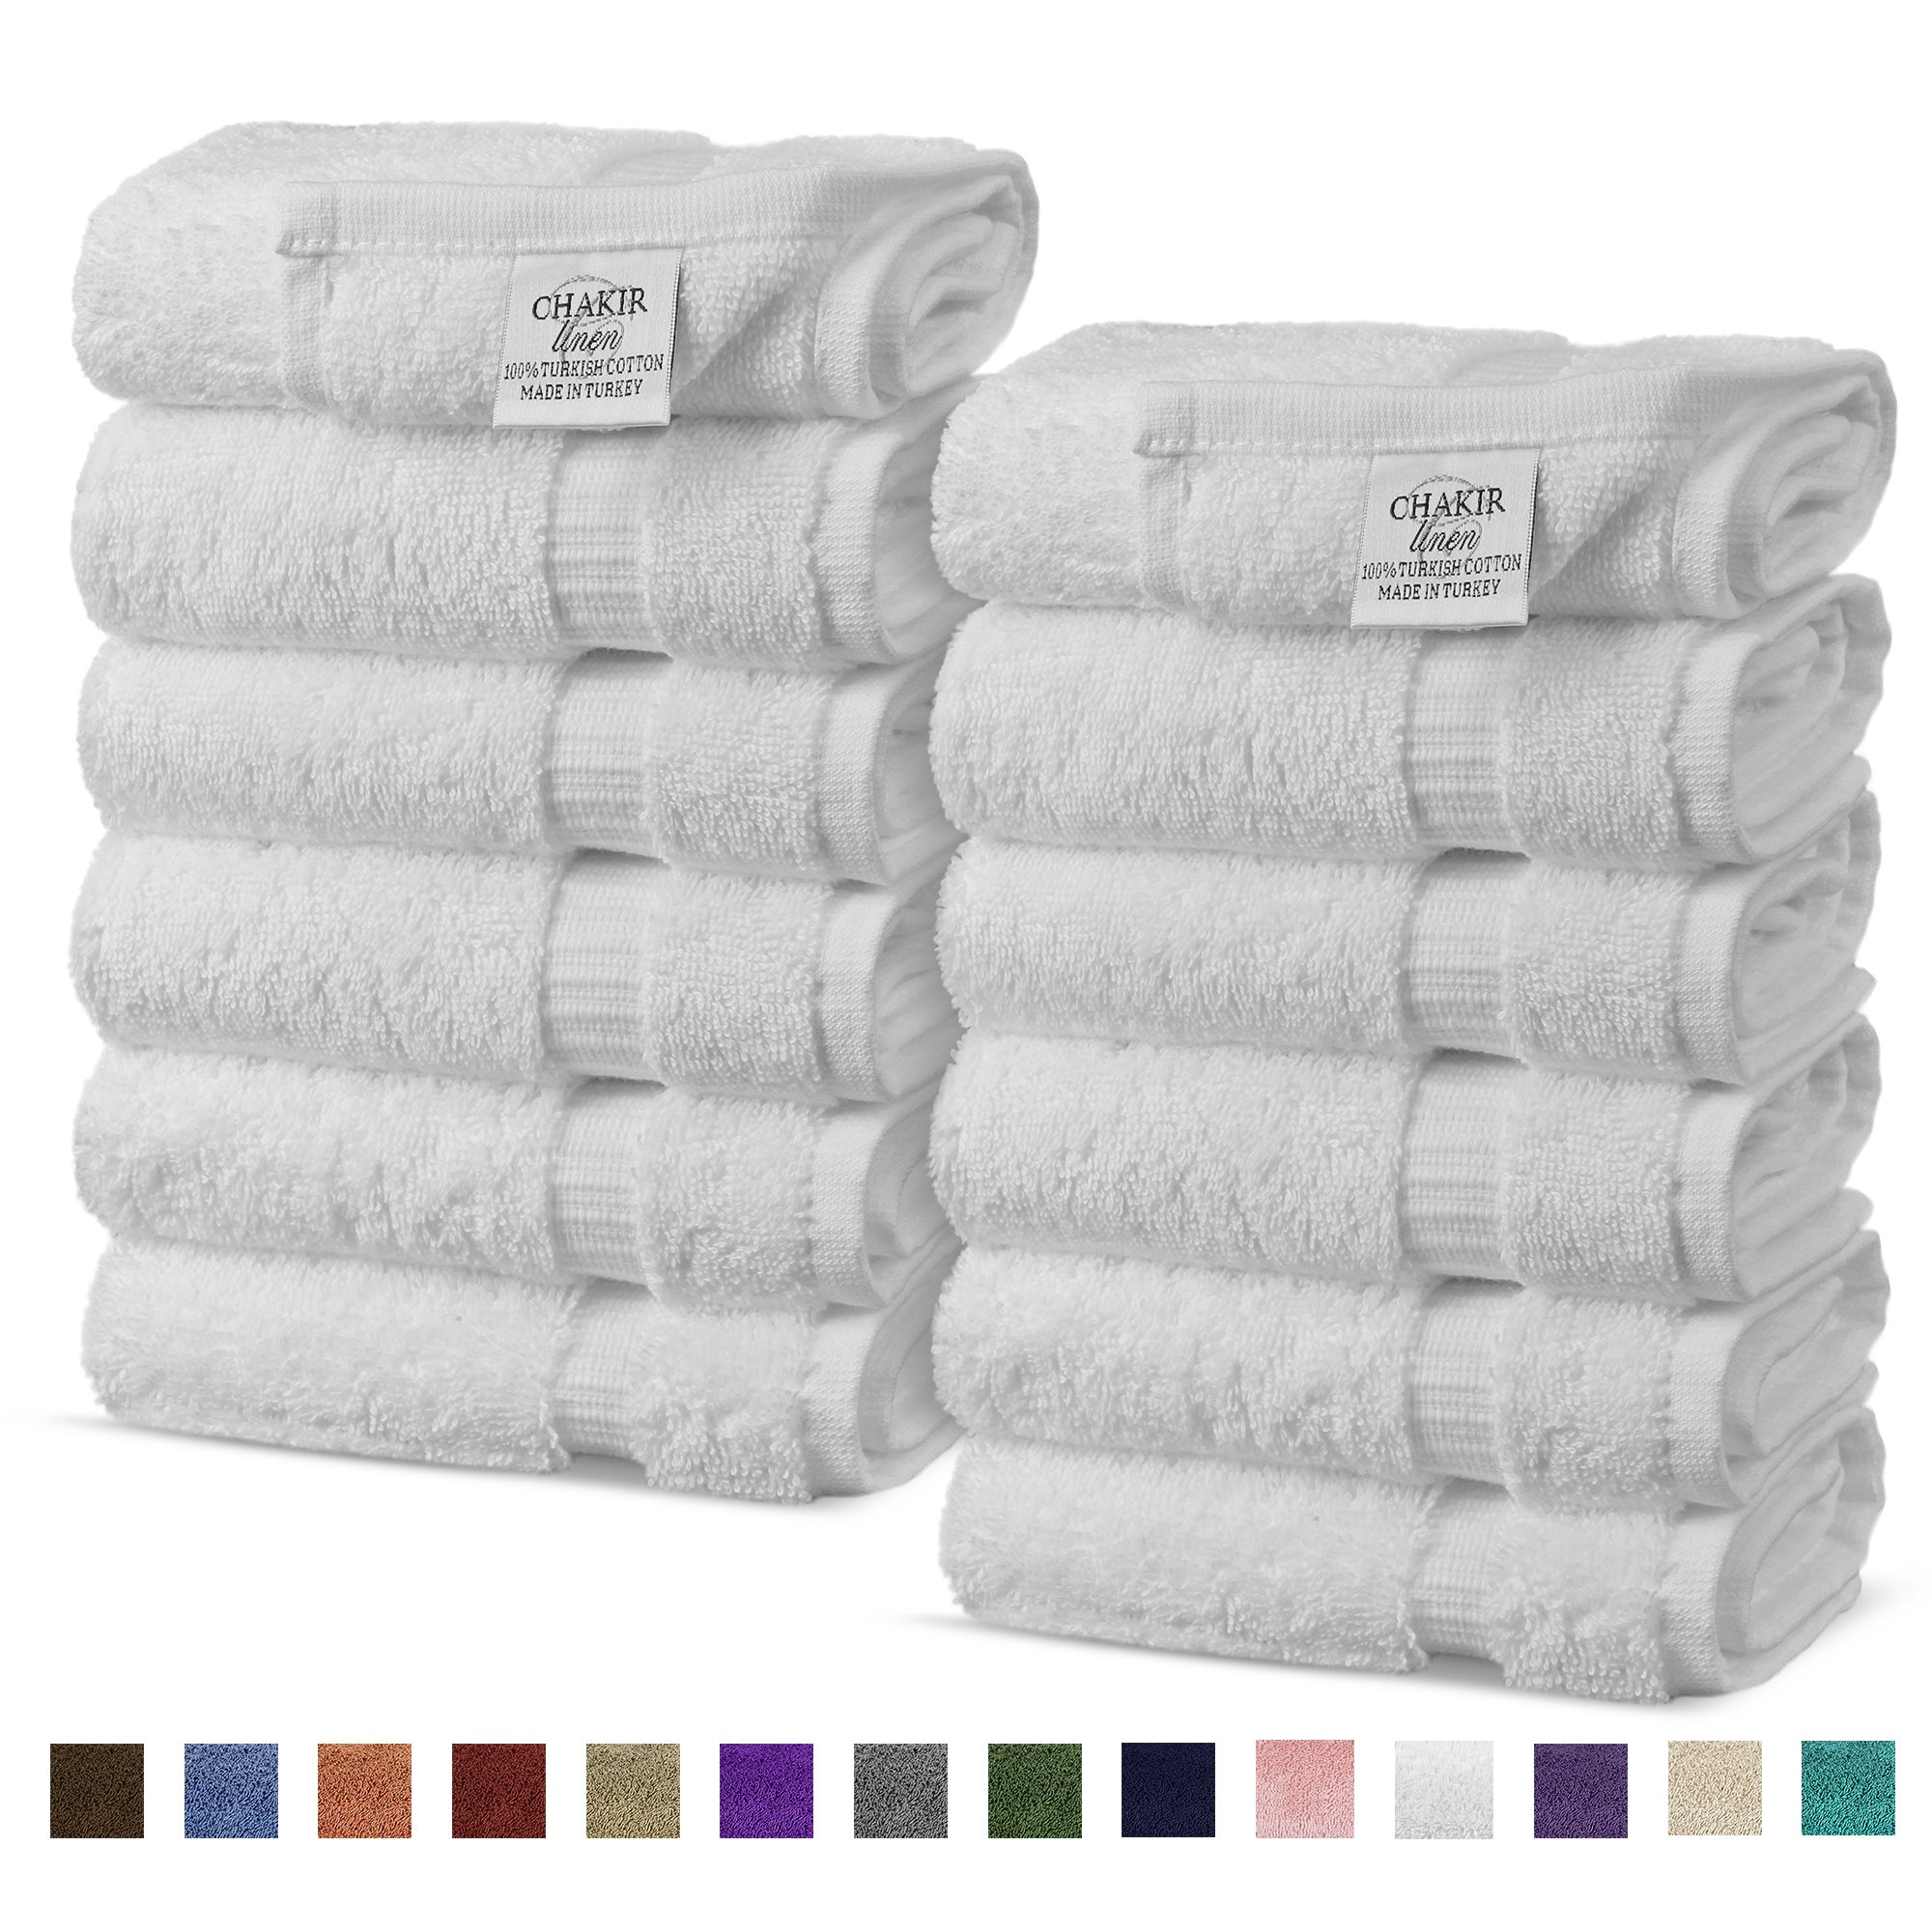 Chakir Turkish Linens Turkish Cotton Luxury Hotel & Spa Bath Towel, Wash Cloth - Set of 12, White